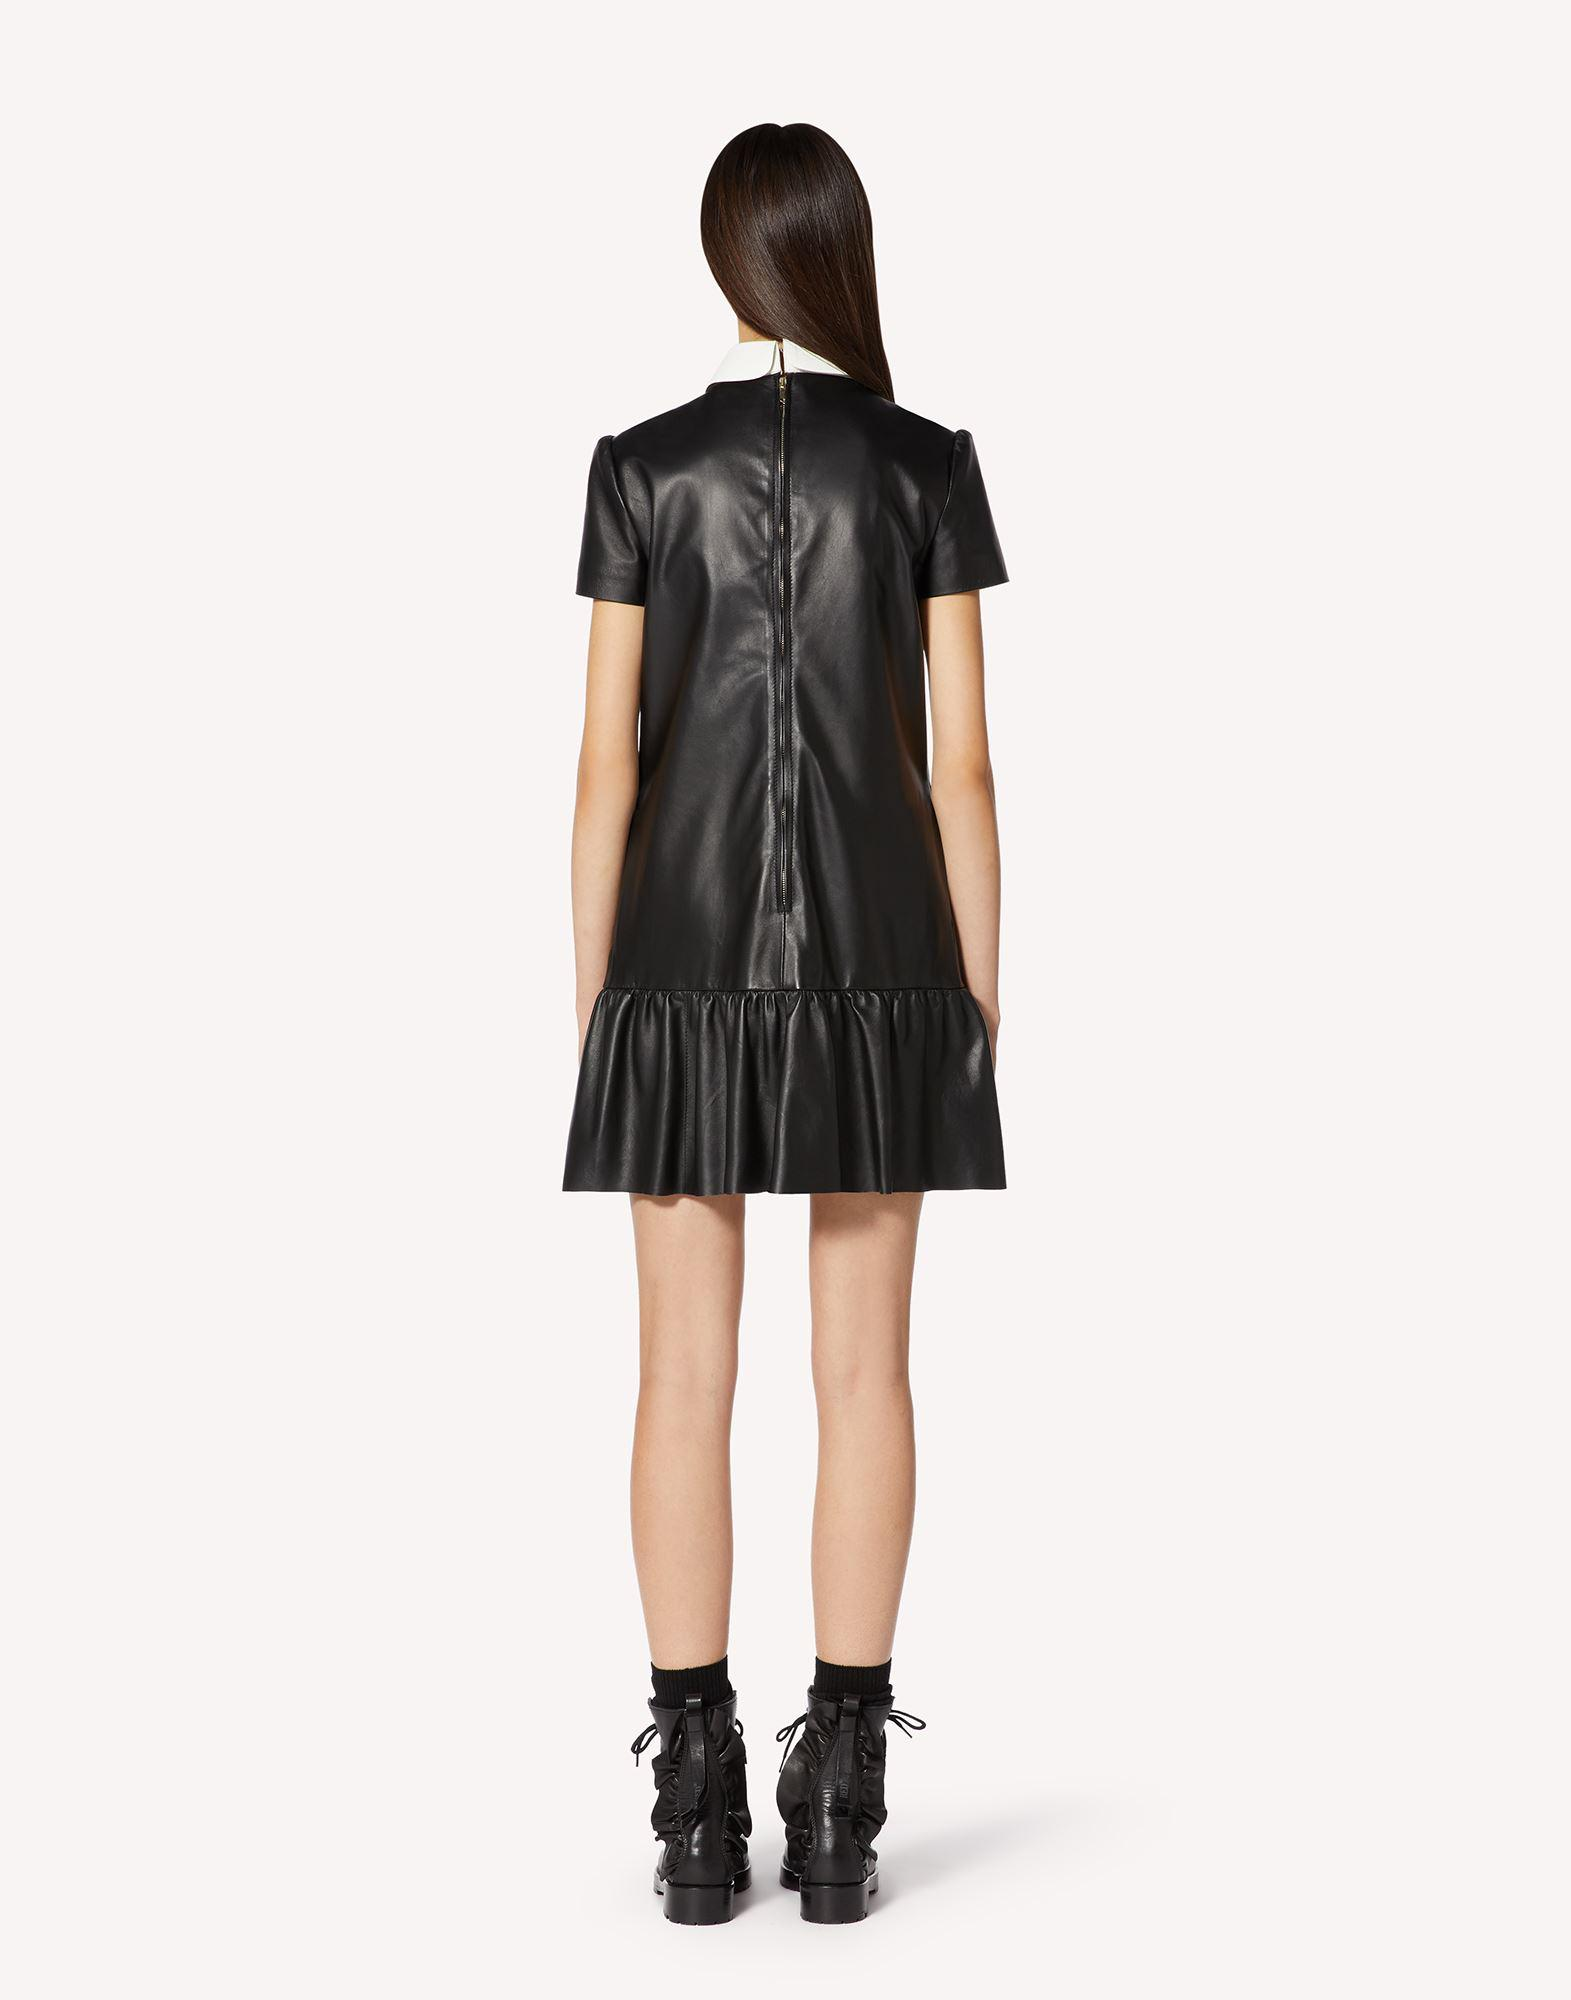 NAPPA LEATHER DRESS WITH COLLAR DETAIL 1